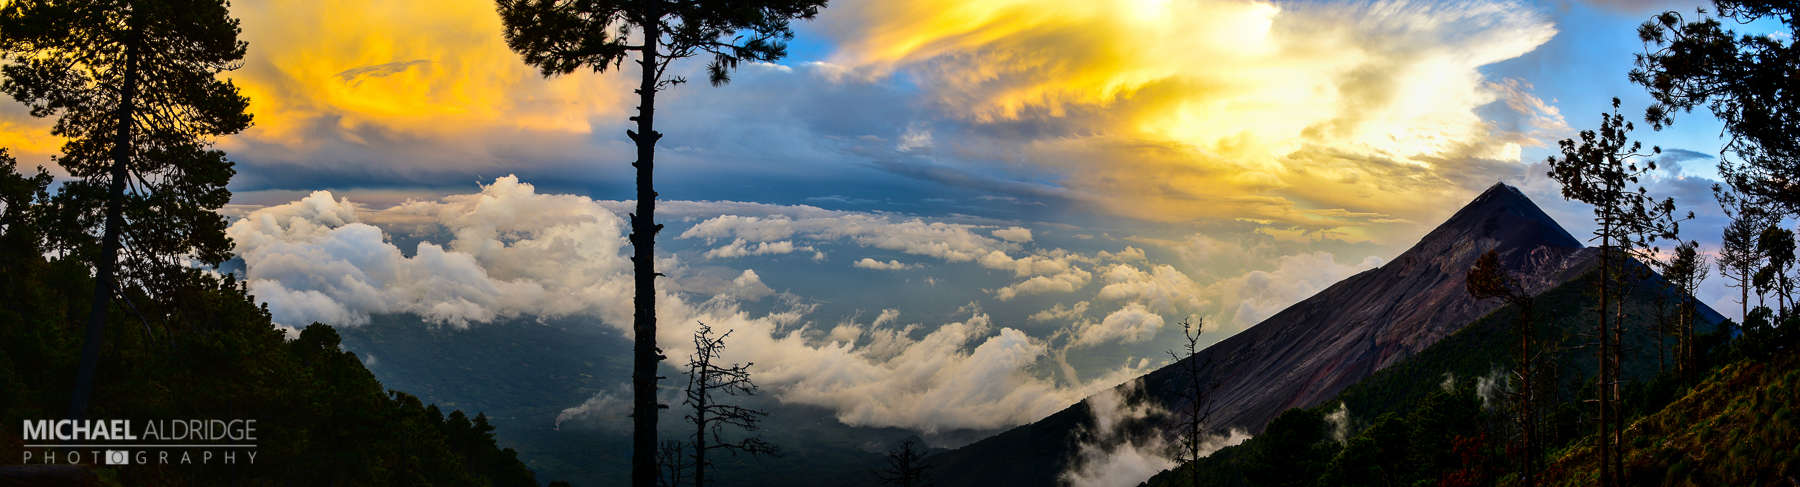 Sunset from Acatenango Volcano